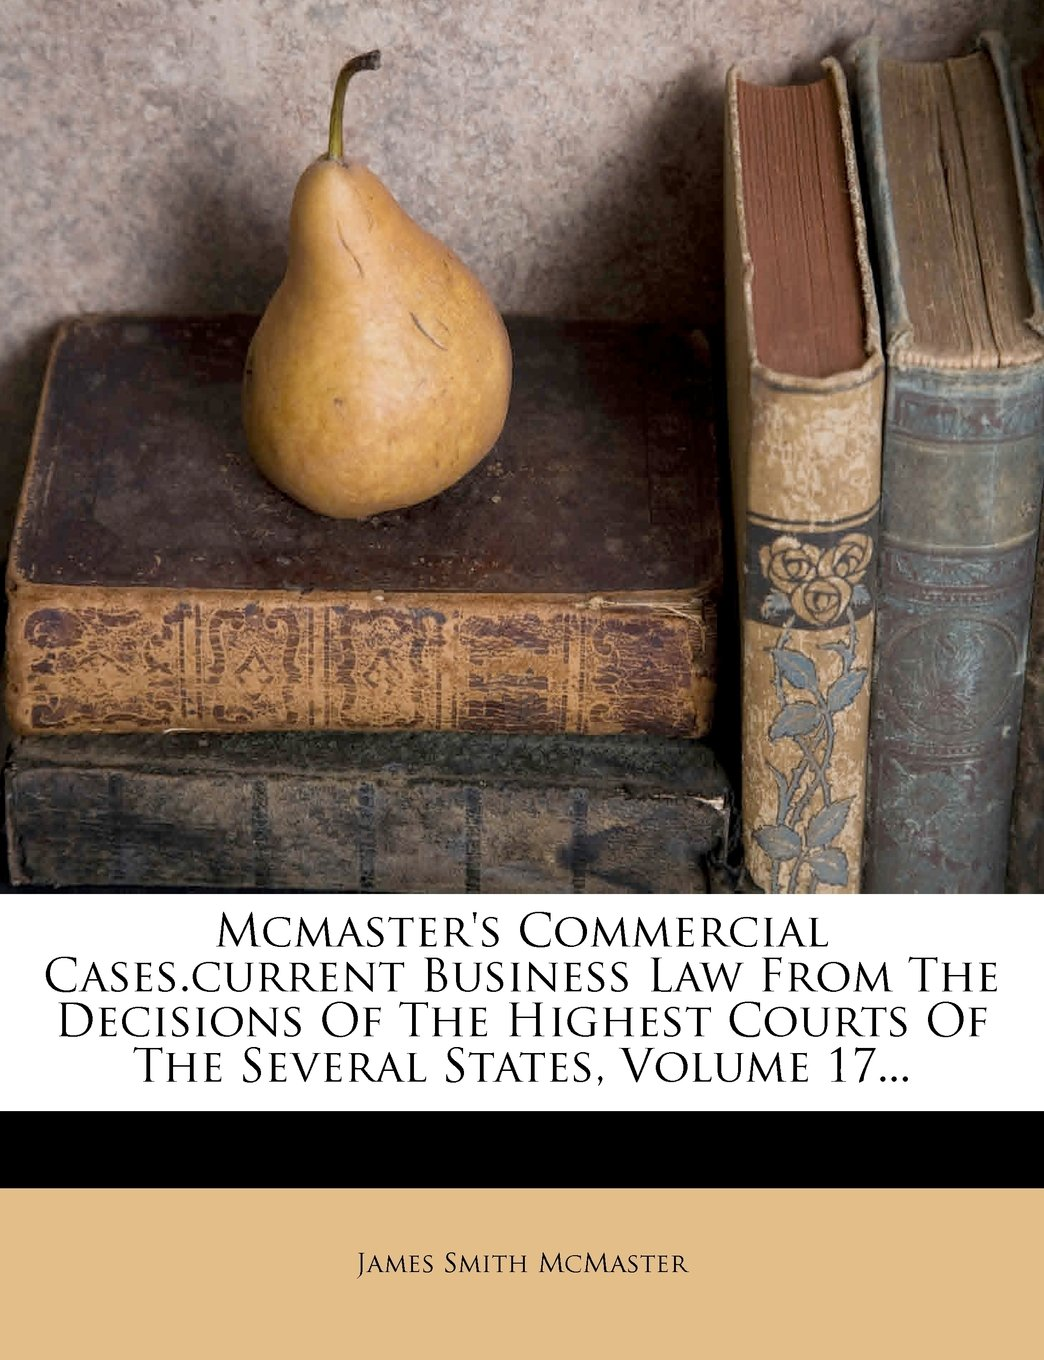 McMaster's Commercial Cases.Current Business Law from the Decisions of the Highest Courts of the Several States, Volume 17... pdf